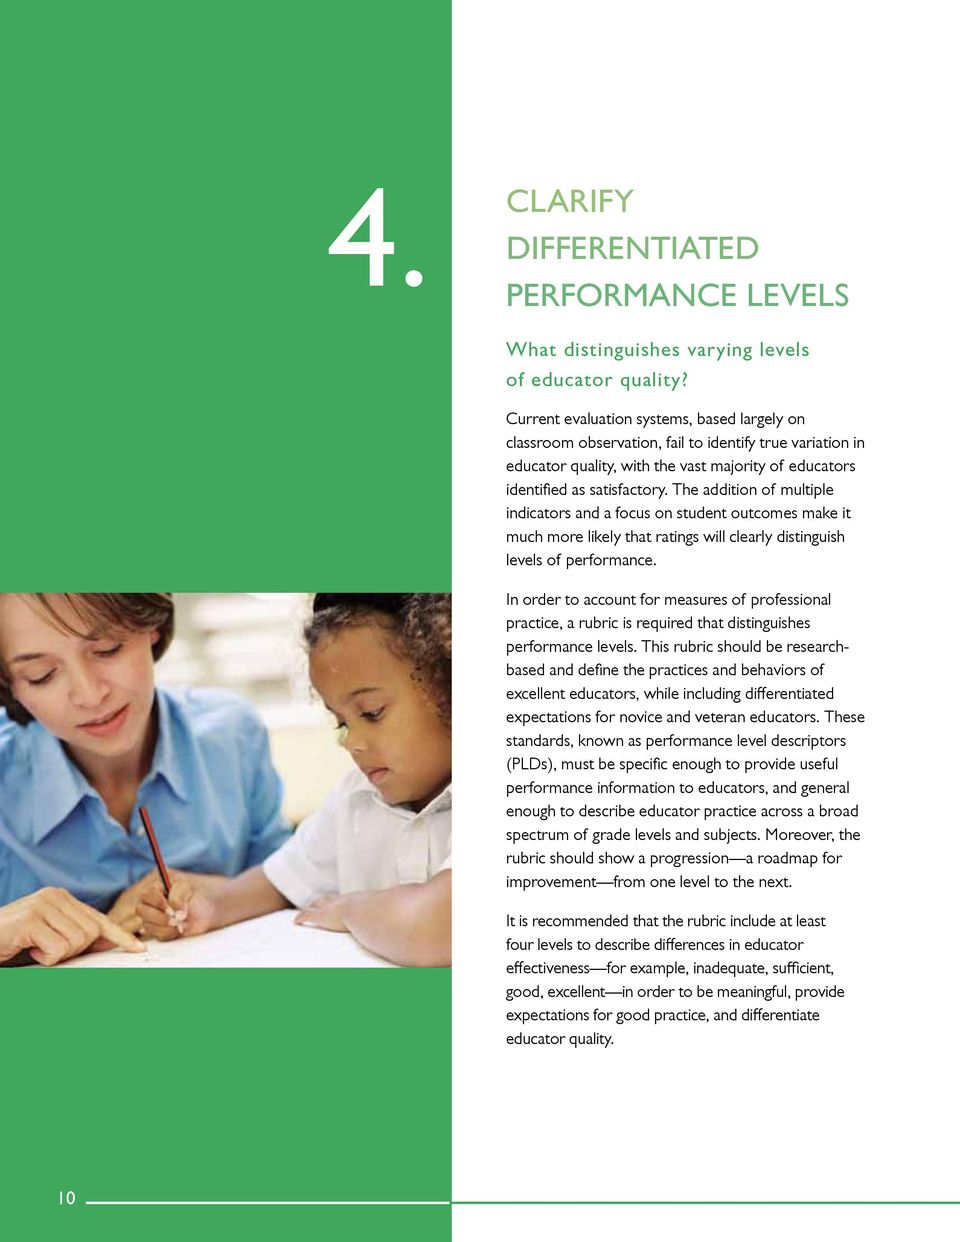 The addition of multiple indicators and a focus on student outcomes make it much more likely that ratings will clearly distinguish levels of performance.